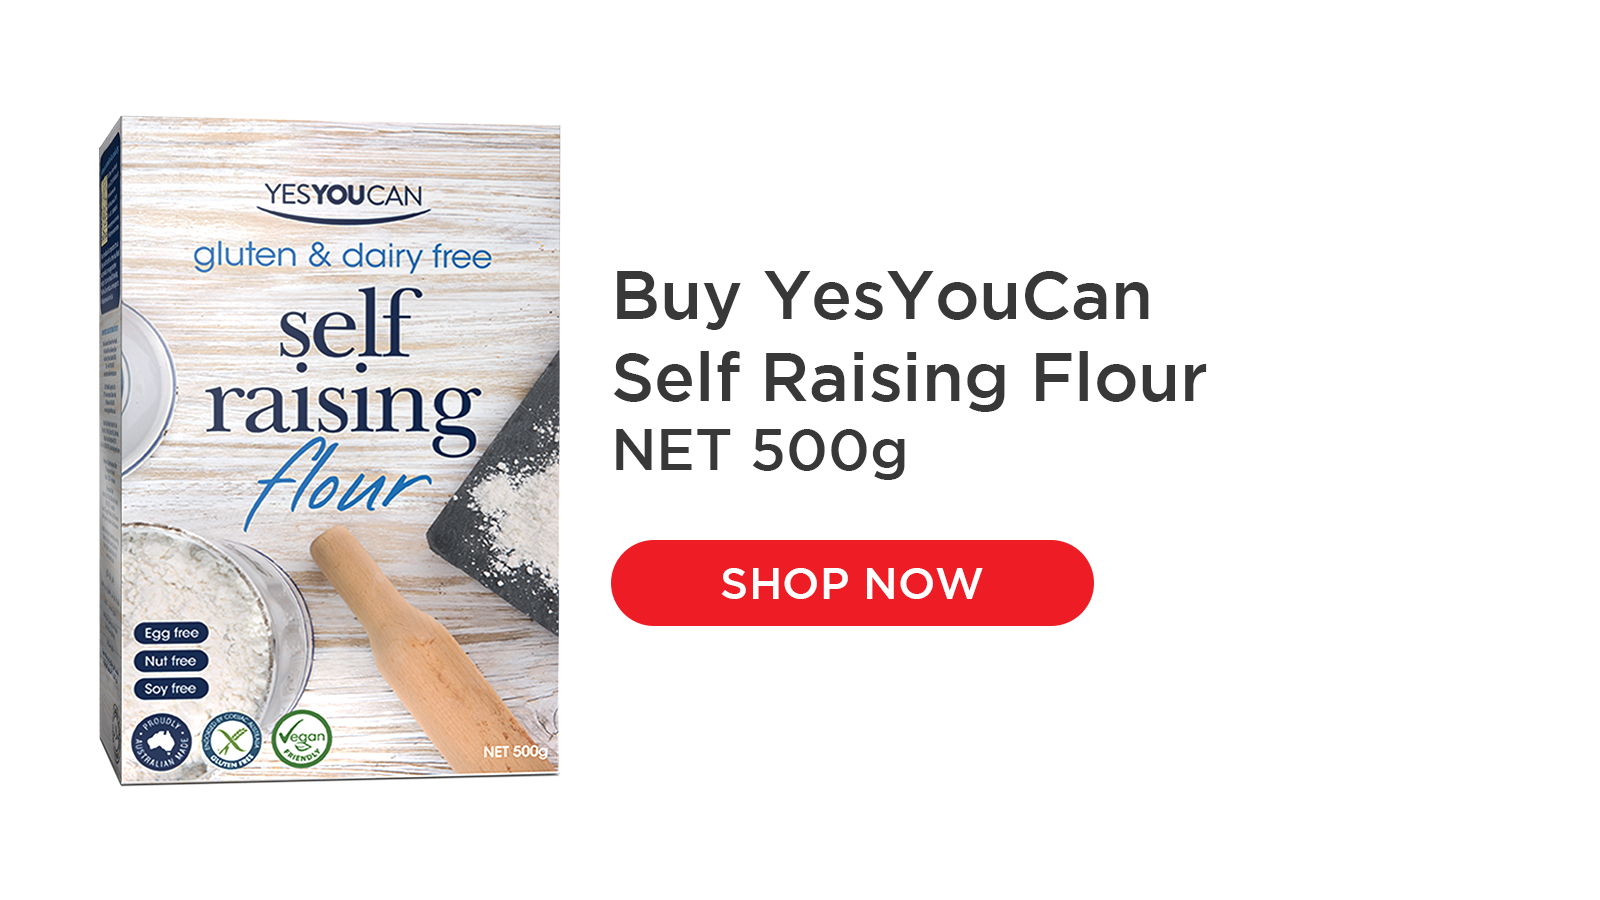 YesYouCan Plain and Self Raising Flours are versatile flours, designed to replace regular flour cup-for-cup in your favourite recipes. Not only are they great for baking such as breads, cakes, pastry, pizza bases, they are also fantastic for batters, dumplings, thickening sauces and coating foods for frying. Dairy and egg free so suitable for vegan cooking. Also low FODMAP.